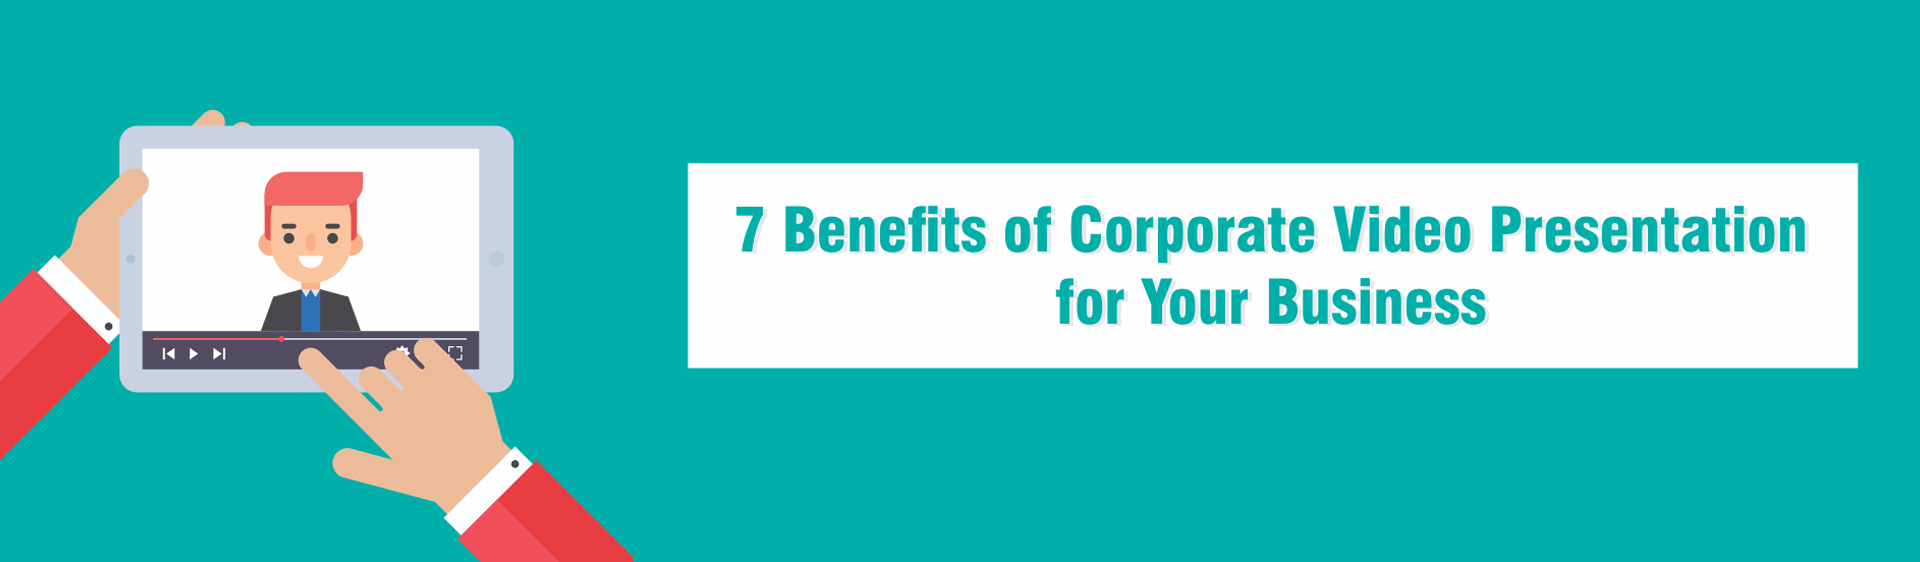 7 Benefits of Corporate Video Presentation for Your Business